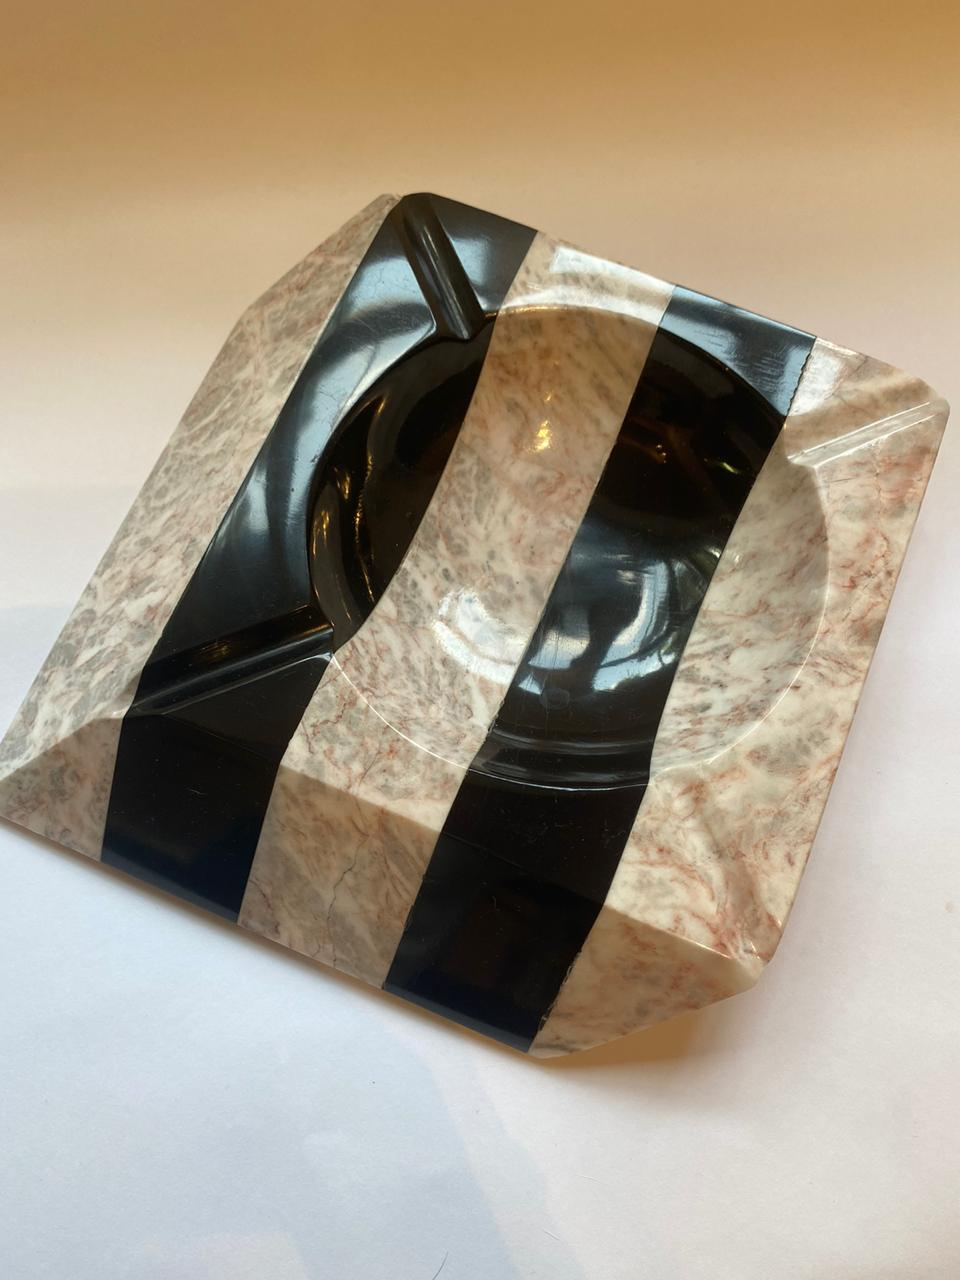 Pink marble ashtray with black.